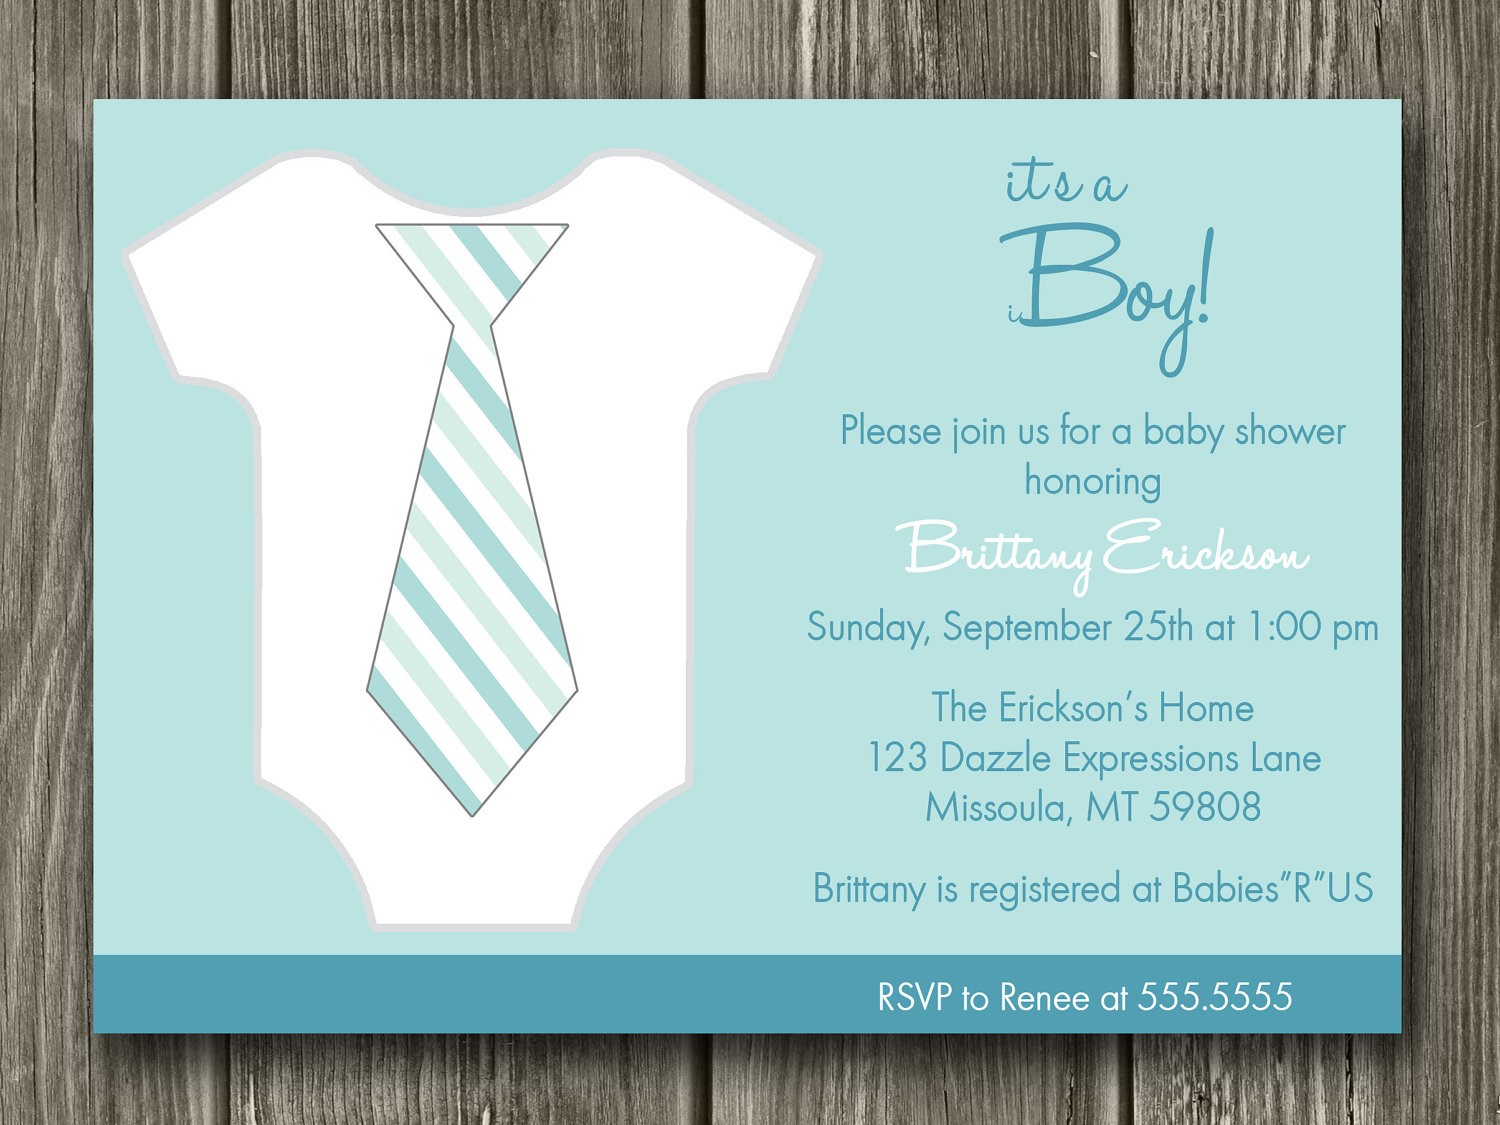 Fabulous Invitation For Baby Shower. Elegant Baby Shower Invitation For Boy within Lovely Free Baby Shower Invitations